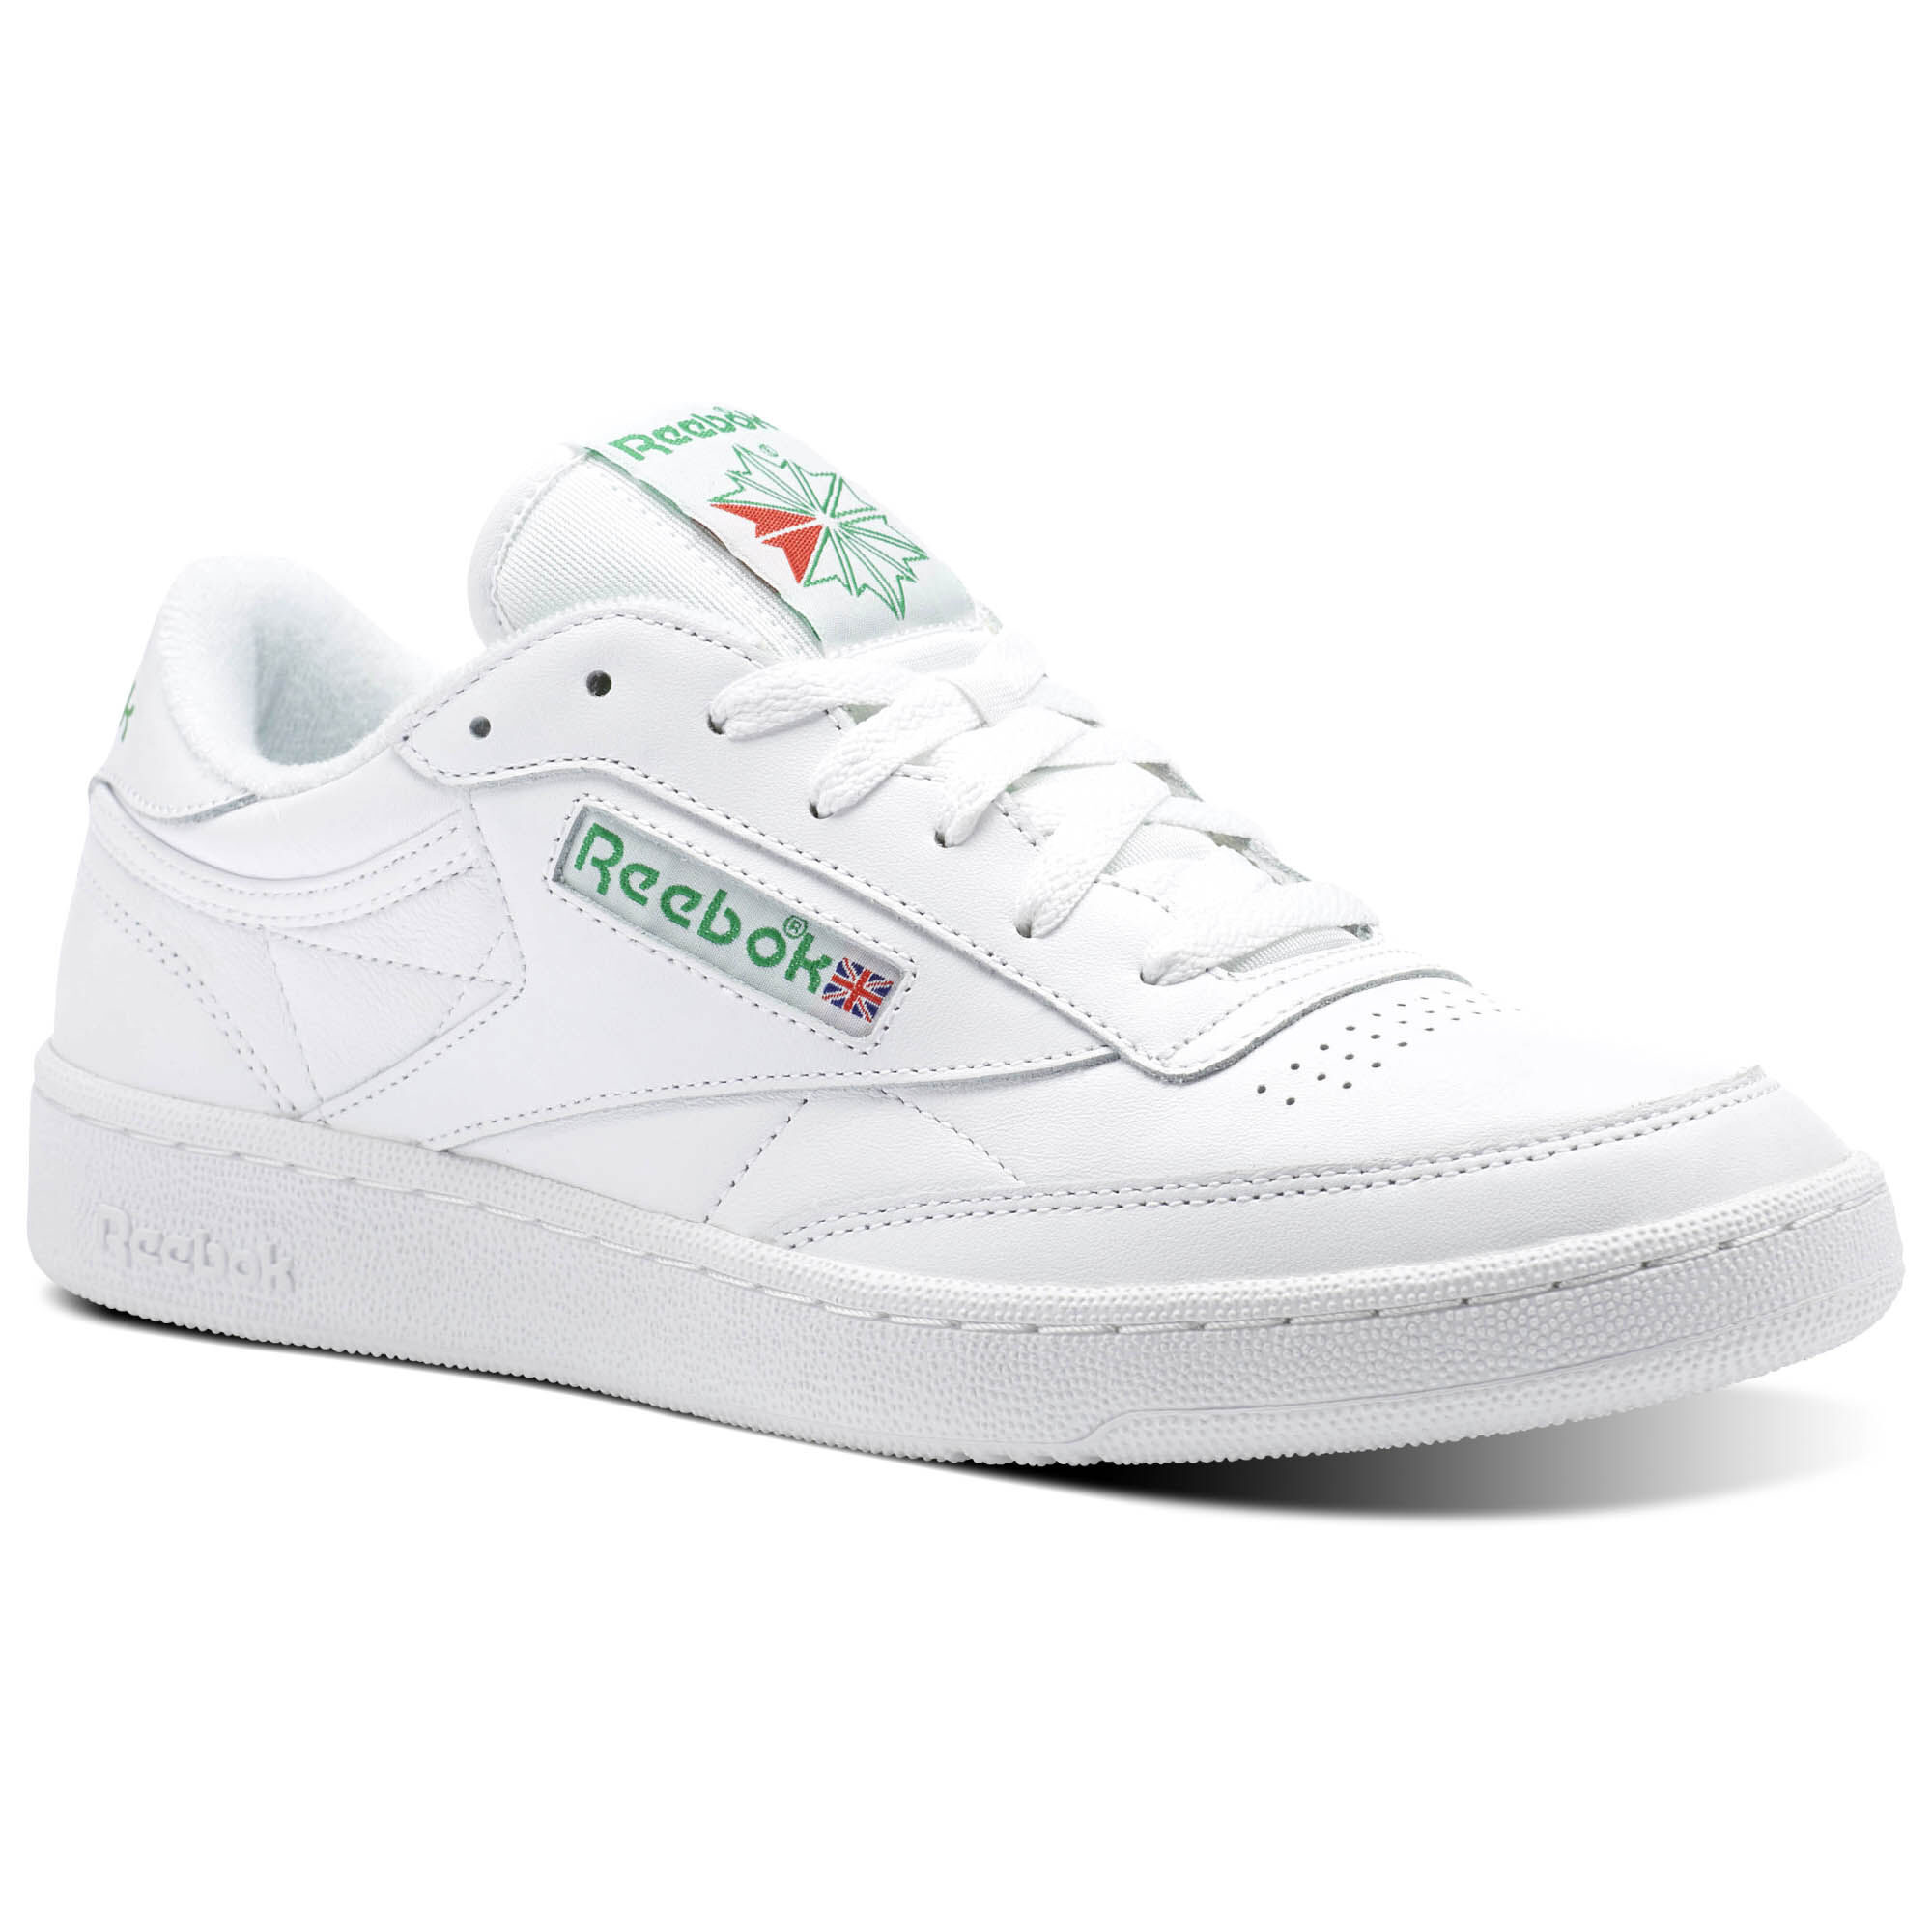 reebok club c 85 archive white reebok mlt. Black Bedroom Furniture Sets. Home Design Ideas